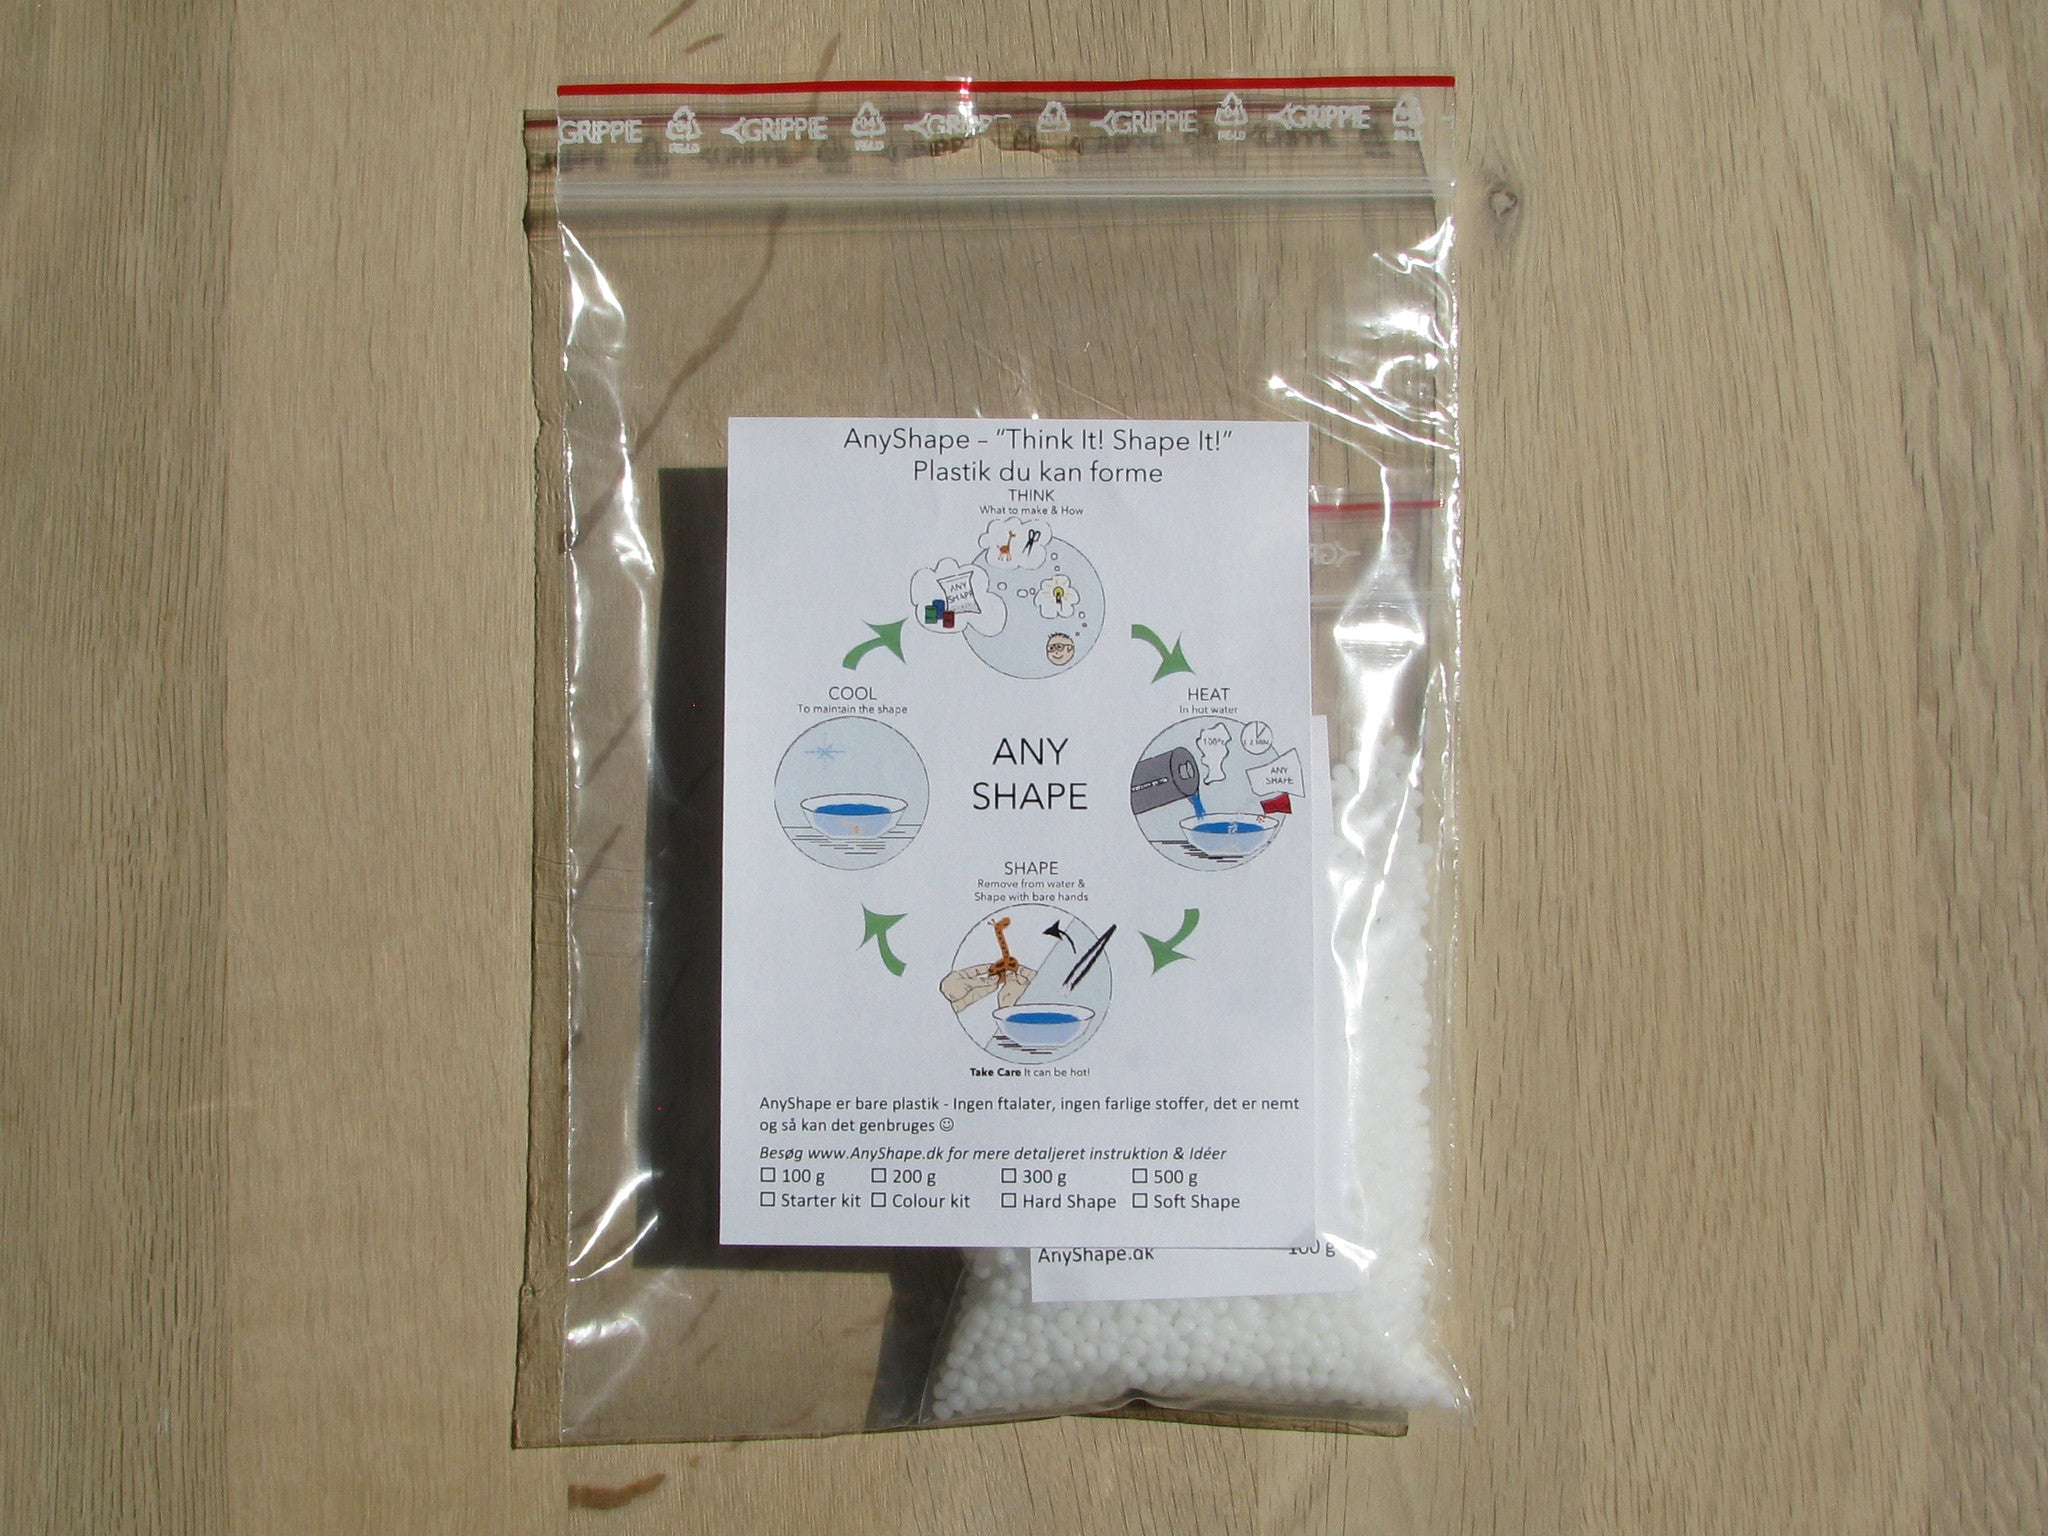 AnyShape 100 g package